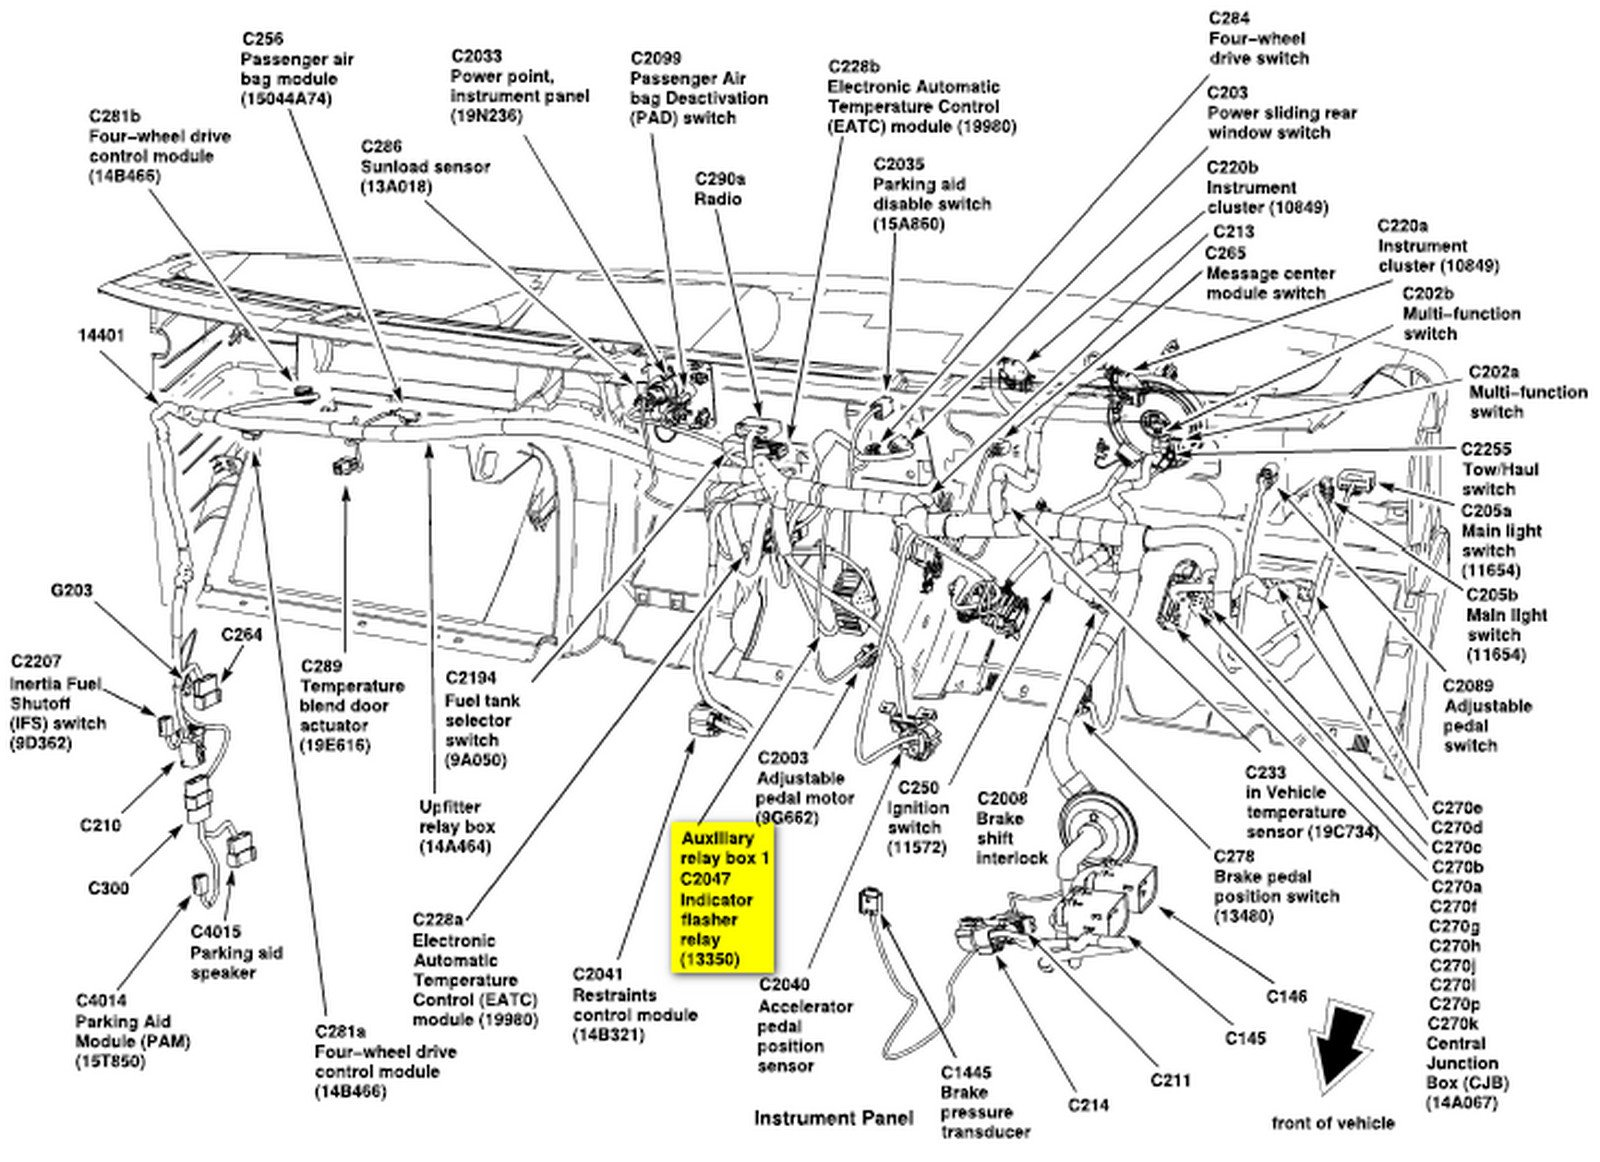 ford f550 dump truck wiring diagram with 03 Ford F 450 Fuse Box Diagram on Wiring Schematic For 2006 Ford Lcf furthermore Parking Lights Wiring Diagram For 2004 Ford F550 together with Free Download Eaton Fuller 10 Speed Transmission Service Manual besides 03 Ford F 450 Fuse Box Diagram moreover Western Snow Plow Relay Wiring Diagram.